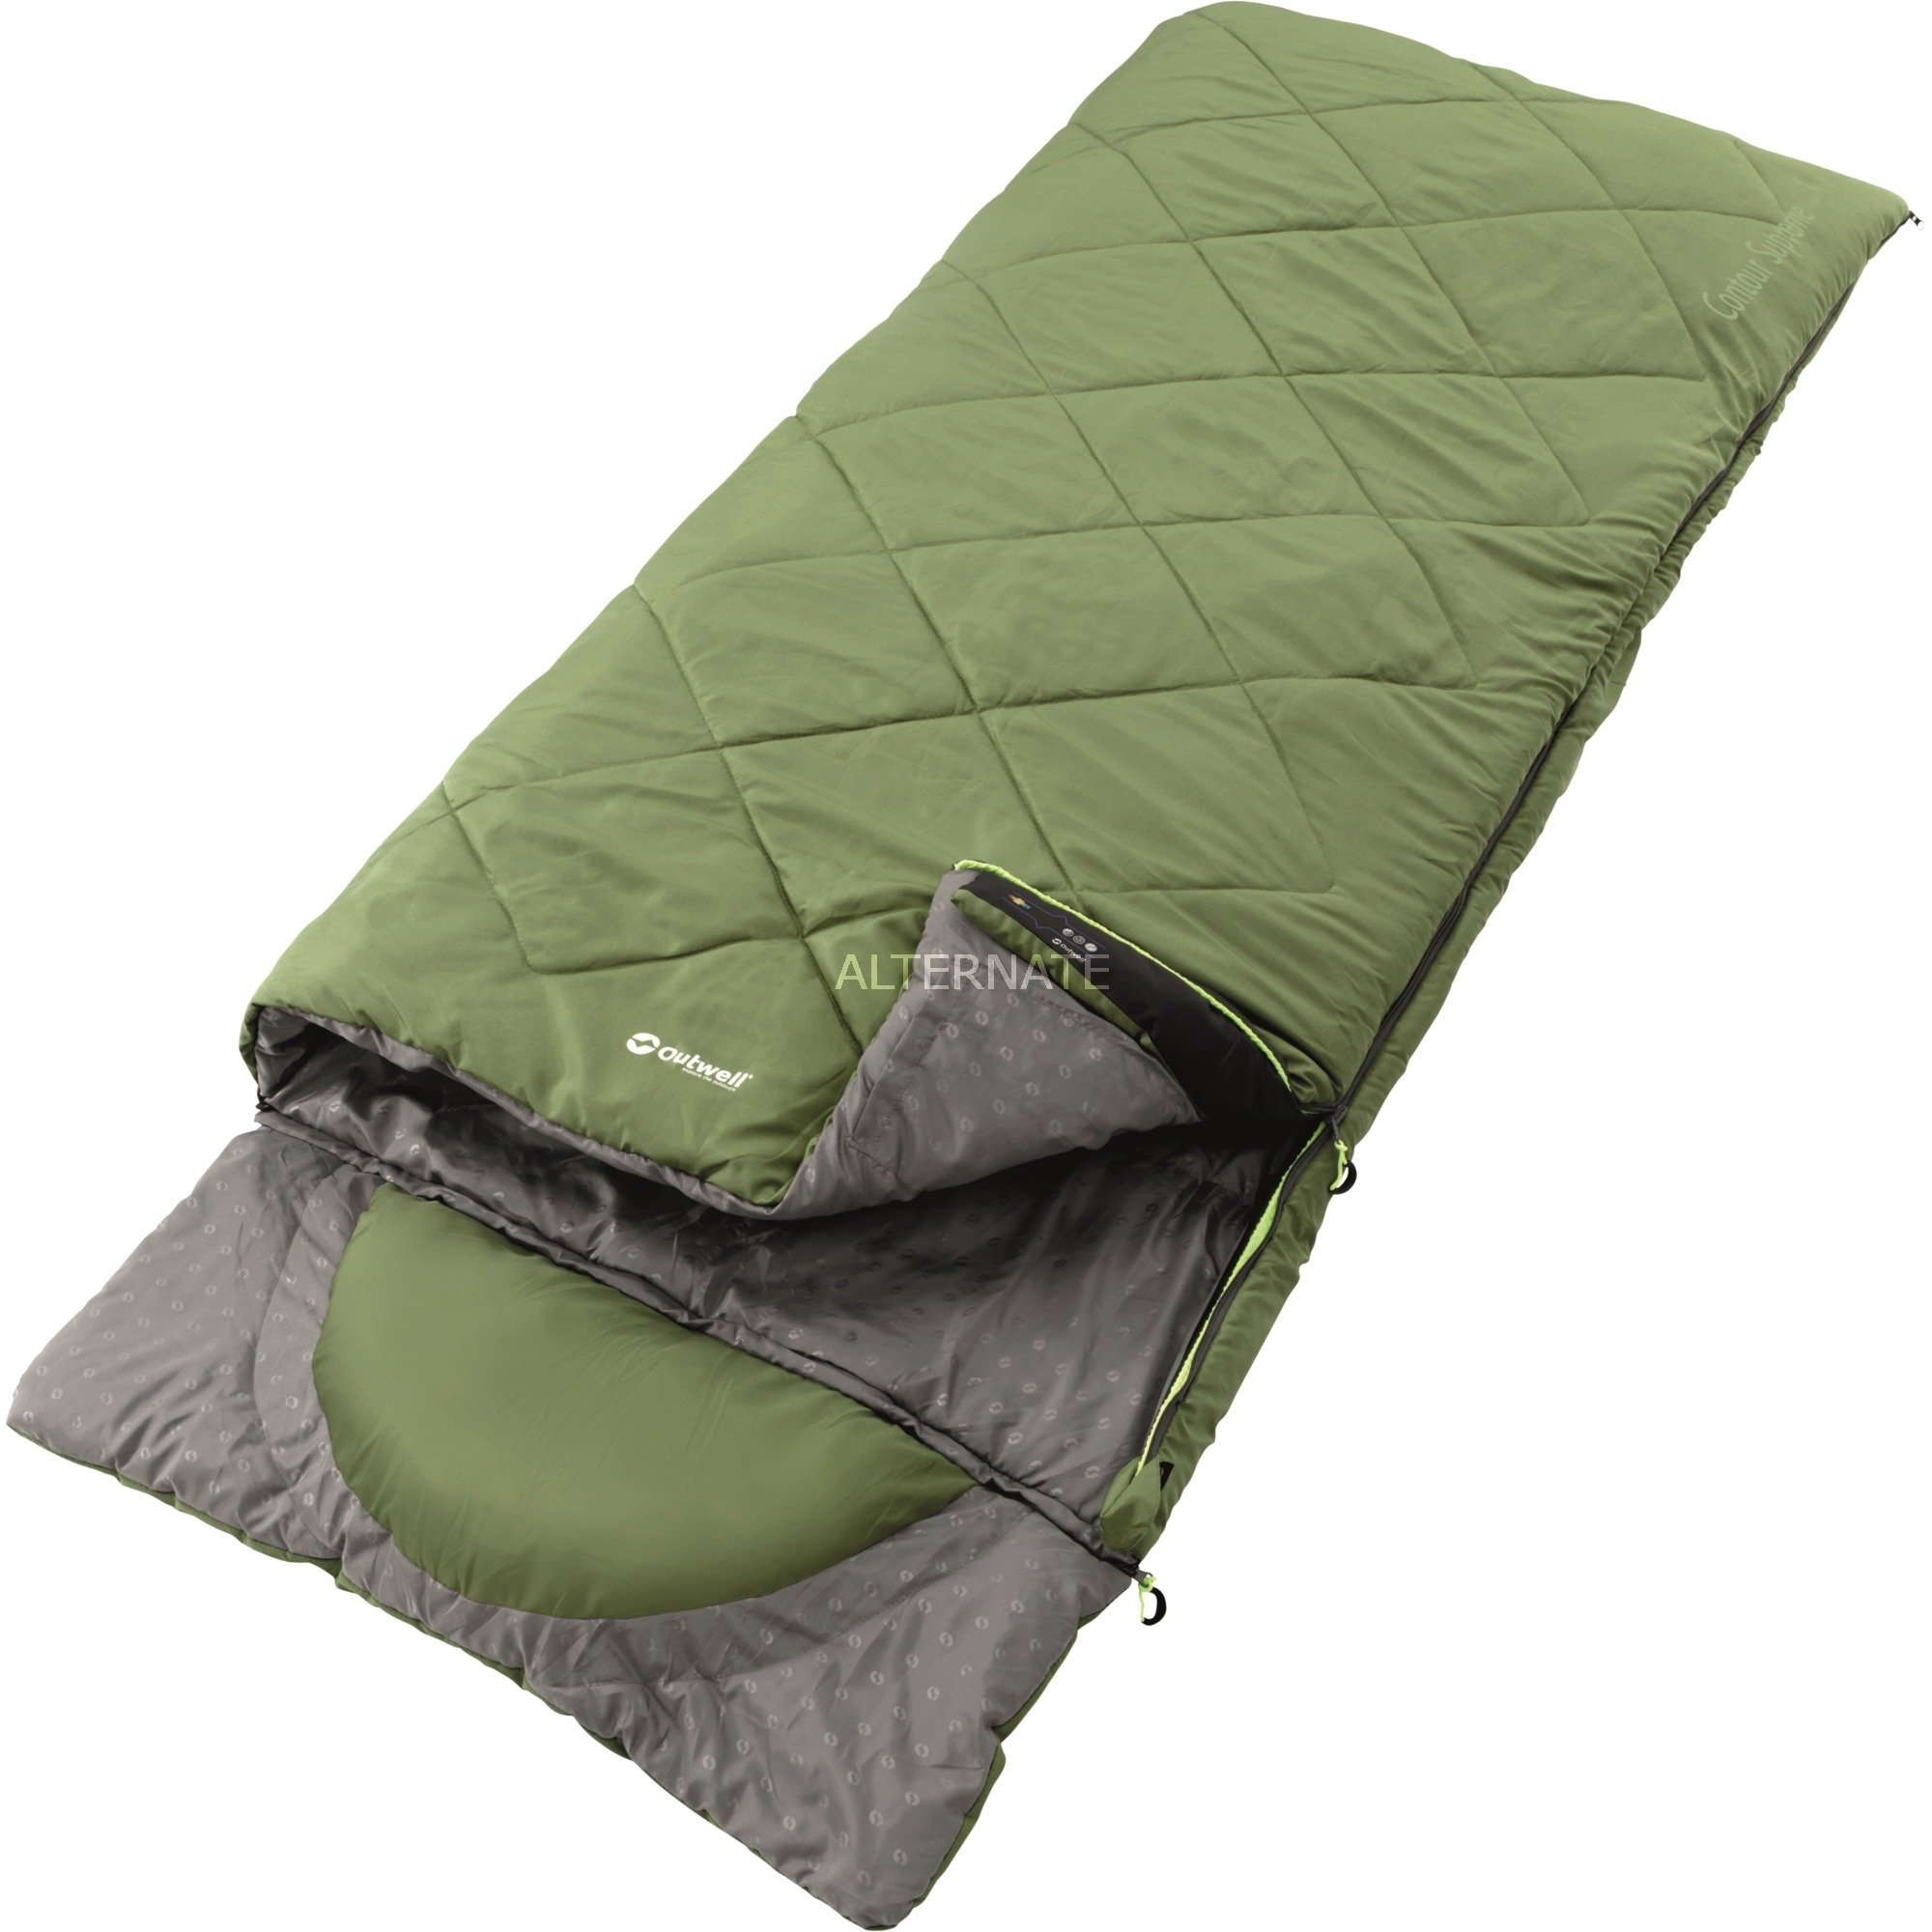 sovepose-contour-supreme-voksen-rectangular-sleeping-bag-mikrofiber-gron